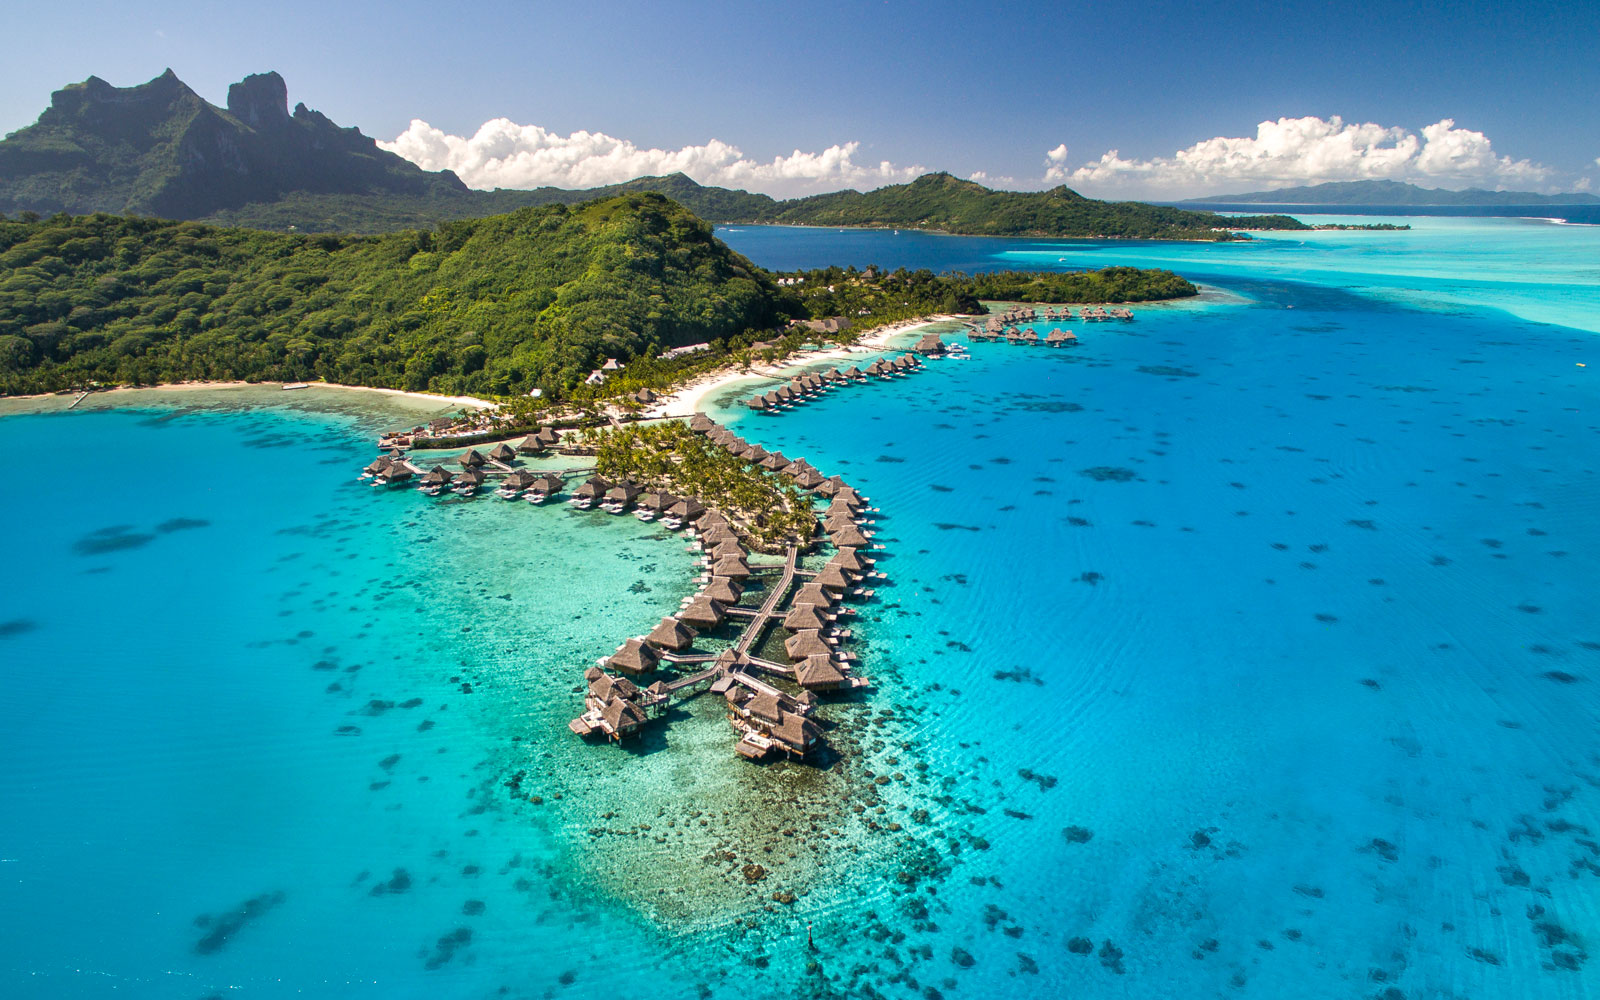 Conrad Bora Bora Nui is opening April 2017.